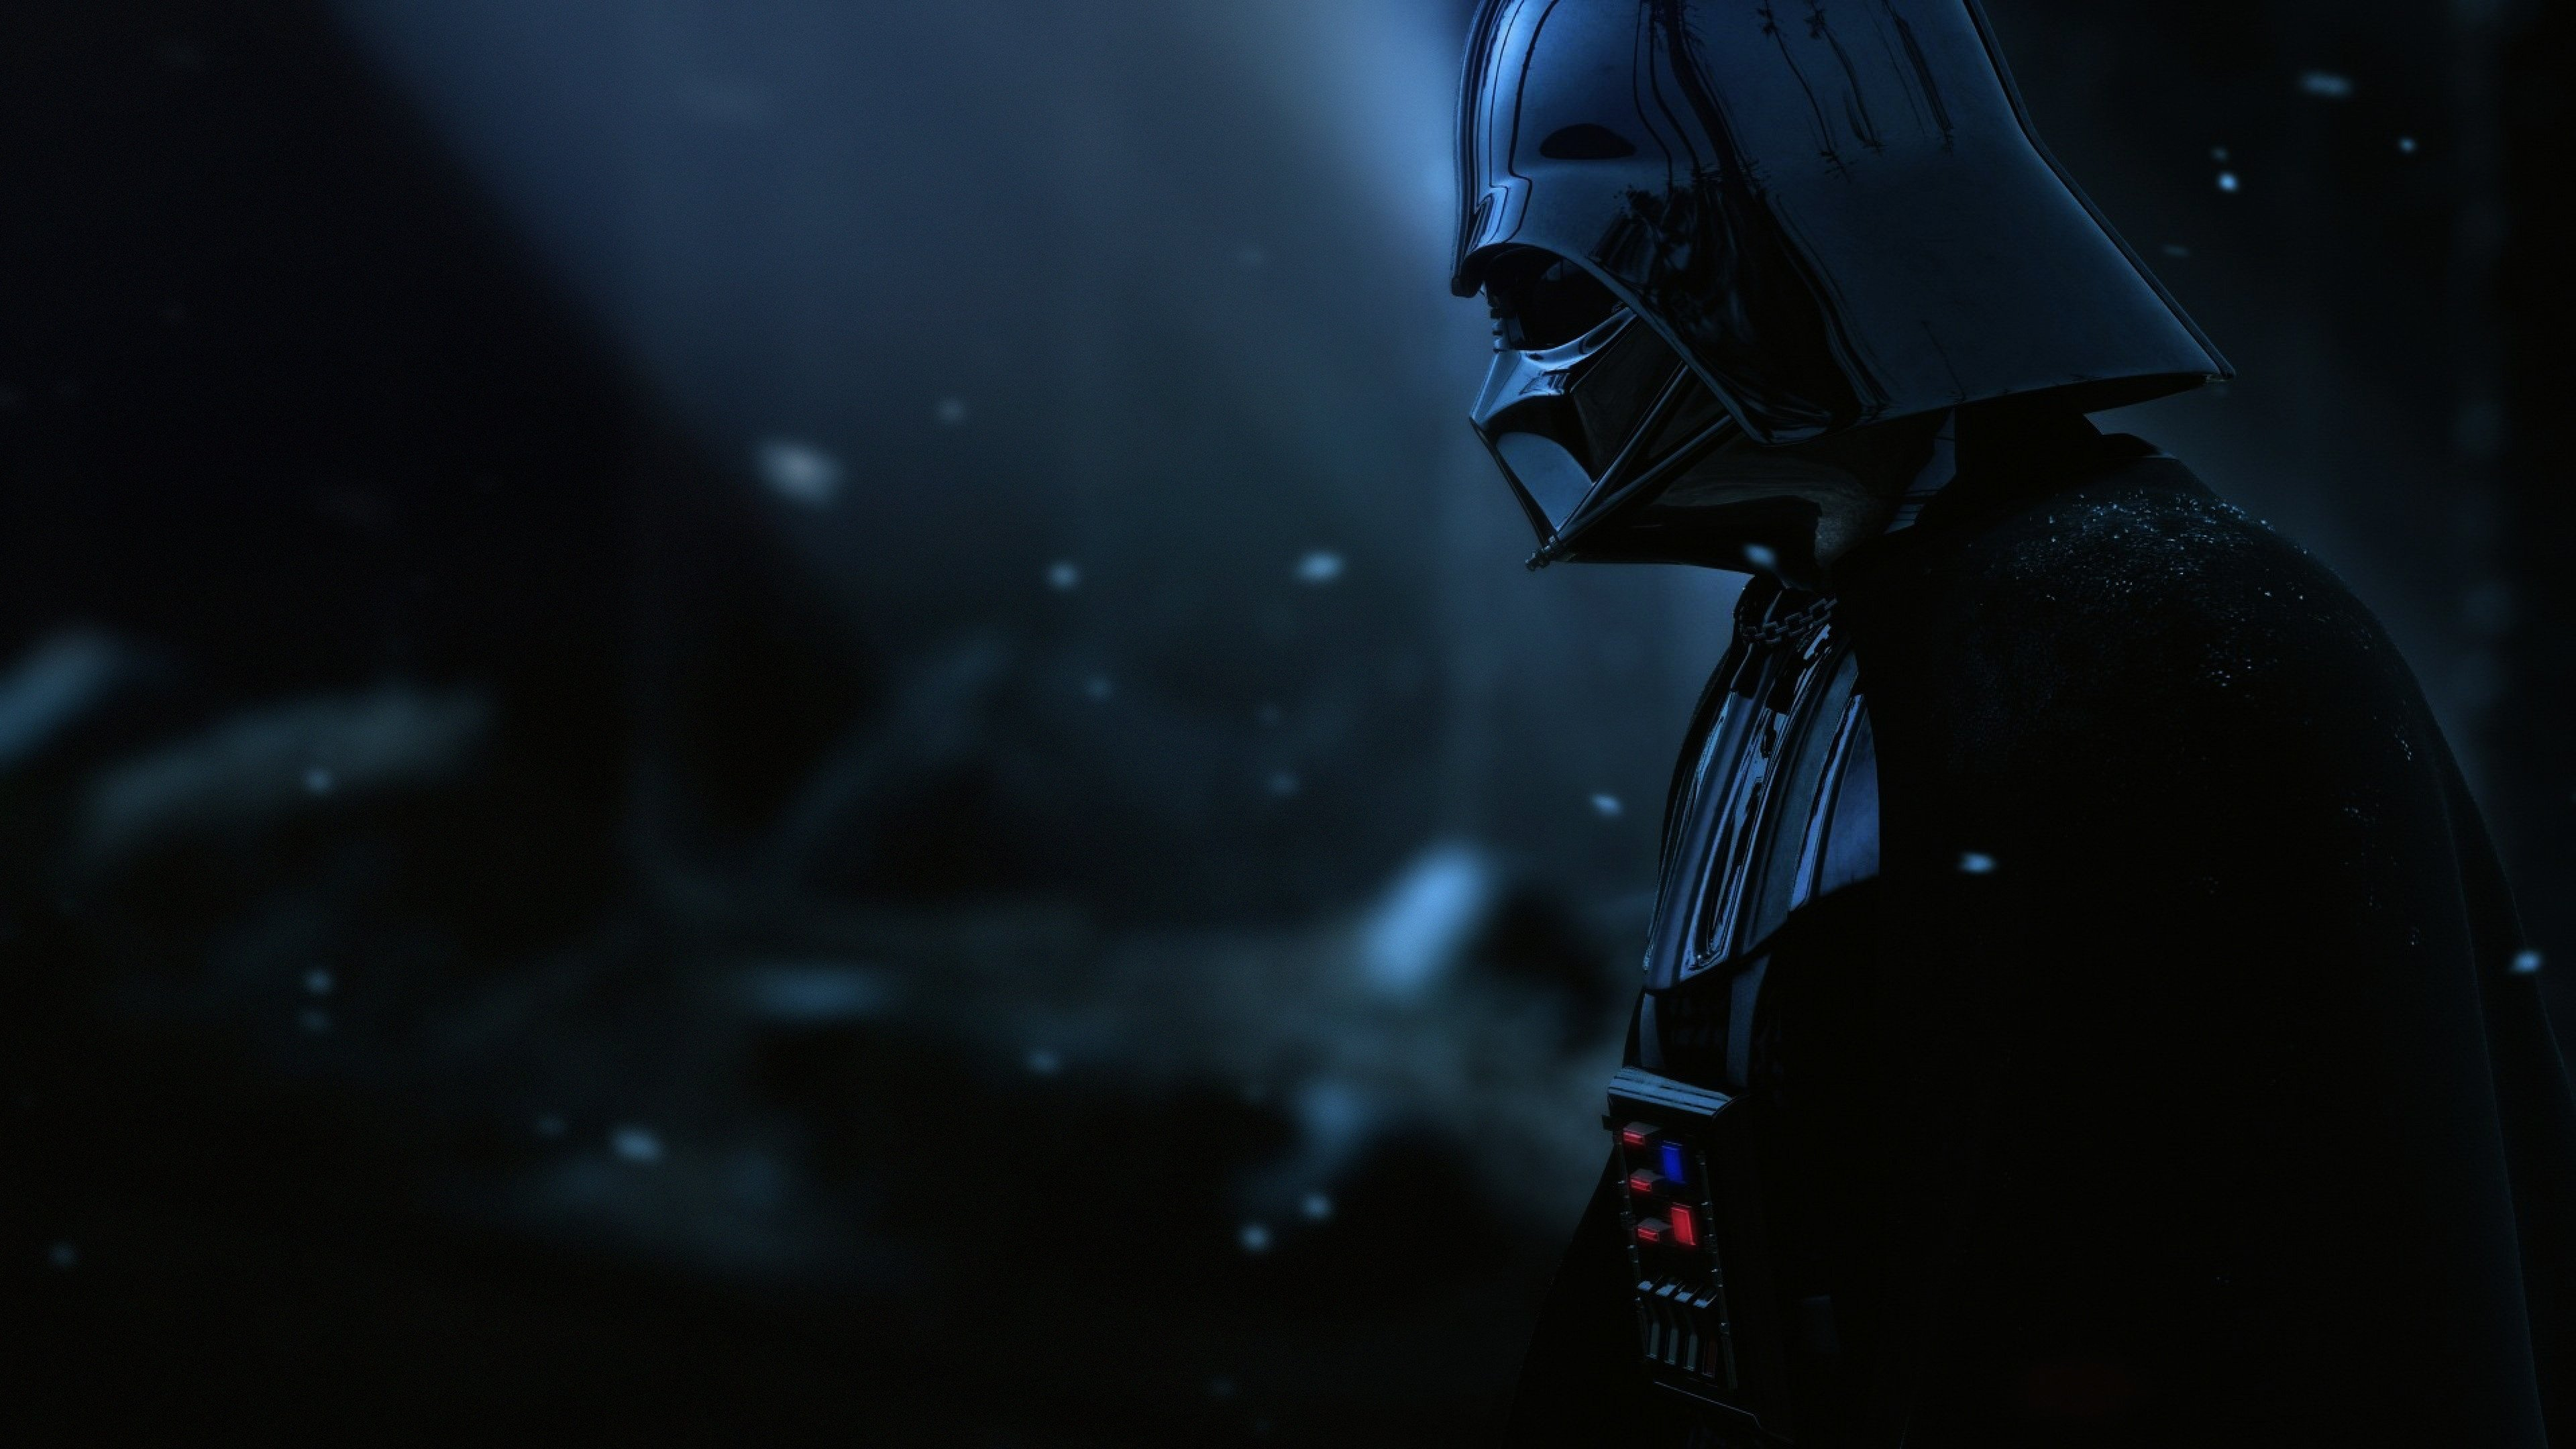 vader wallpapers, photos and desktop backgrounds up to 8K ...